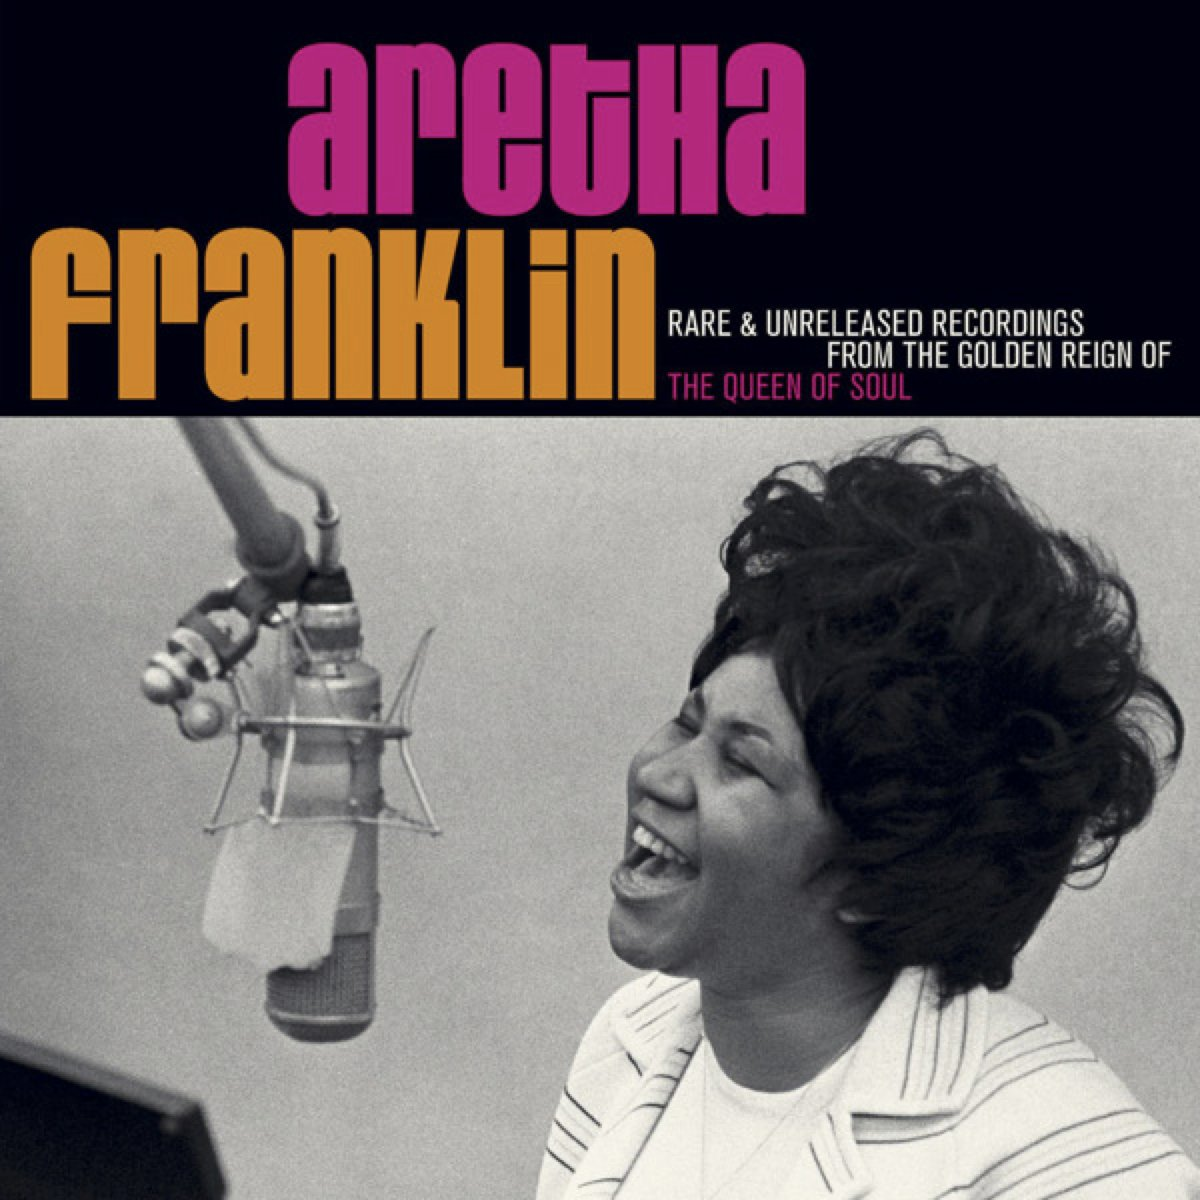 #Music: You Keep Me Hangin' On (This Girl's In Love With You/Spirit In The Dark Outtake) - Aretha Franklin #TwitSongpic.twitter.com/jSGQwfFvyi